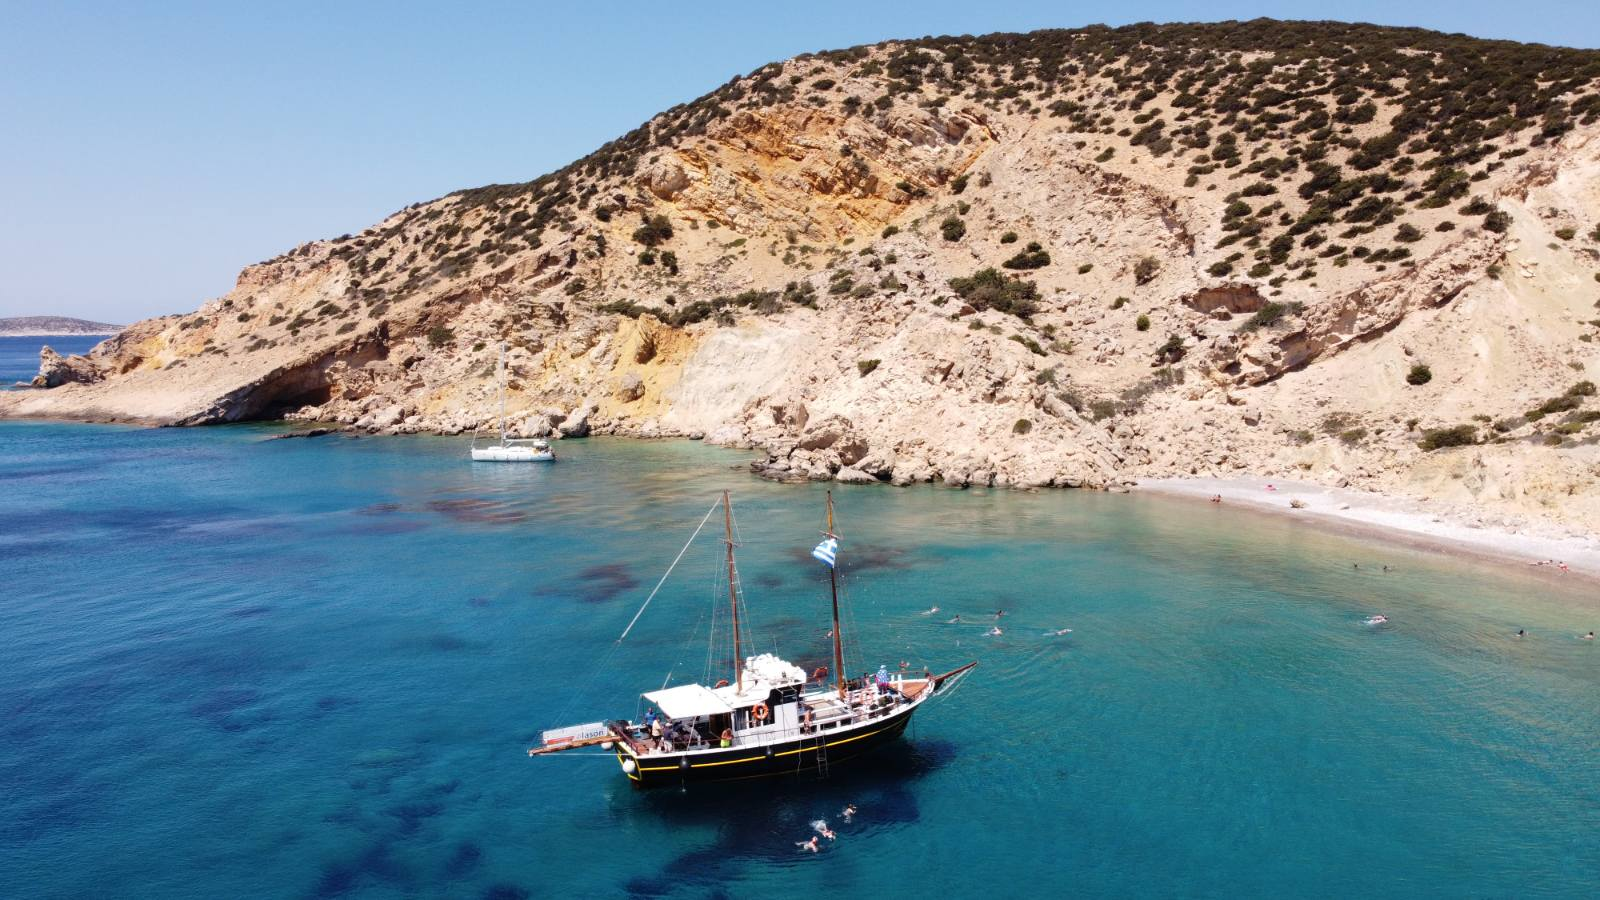 South West Cost of Naxos